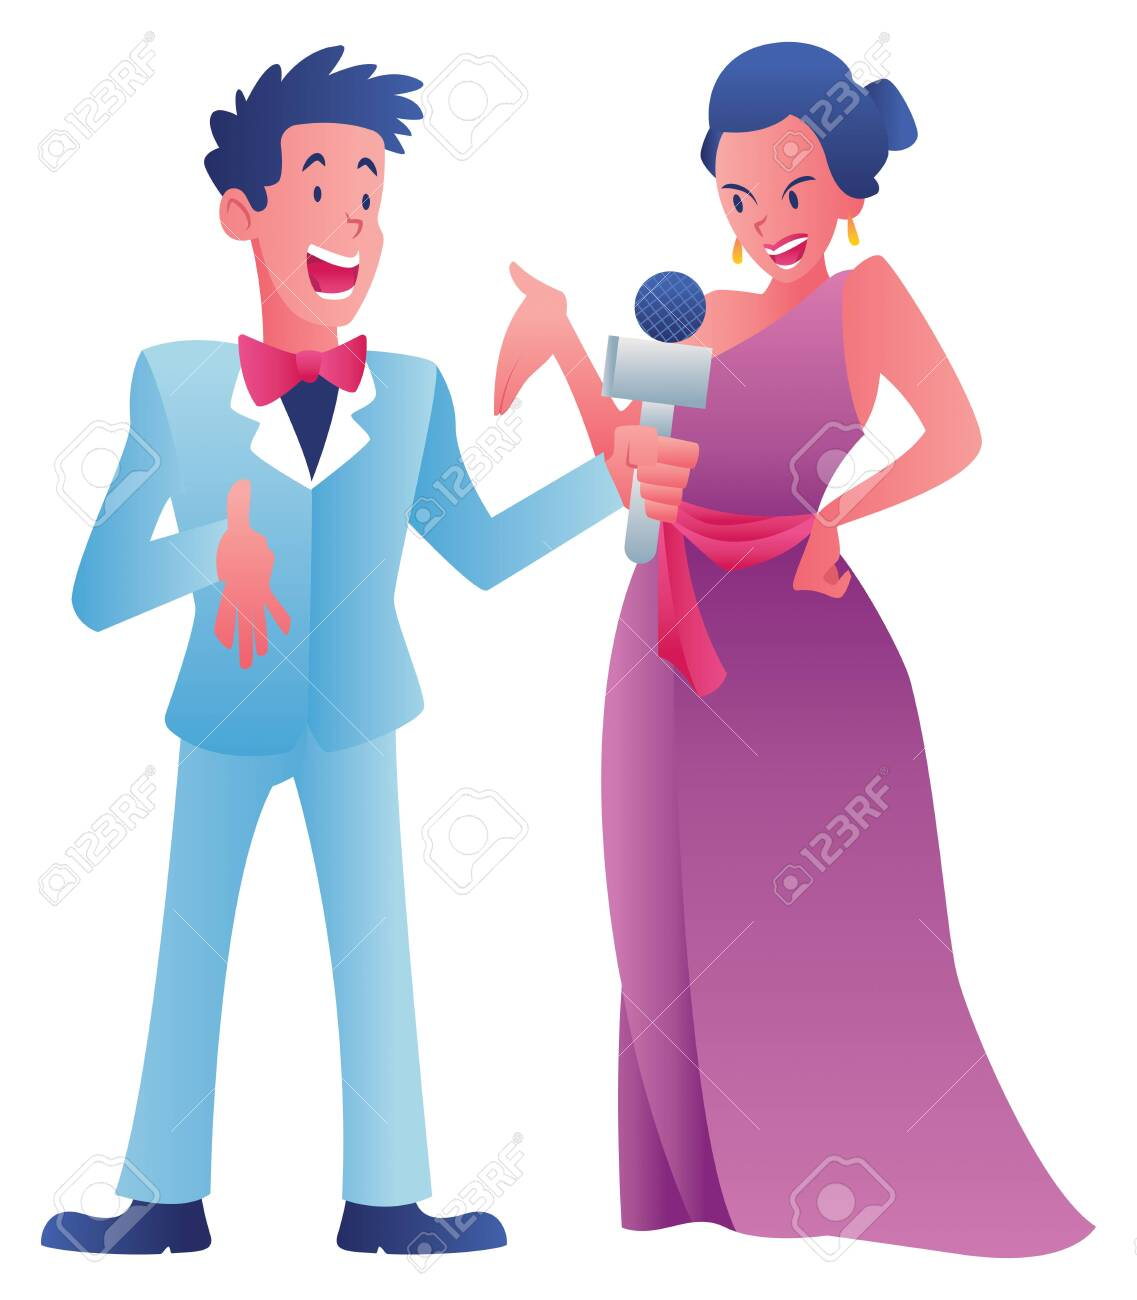 Cartoon illustration of a journalist interviewing a celebrity on white background. - 143534985